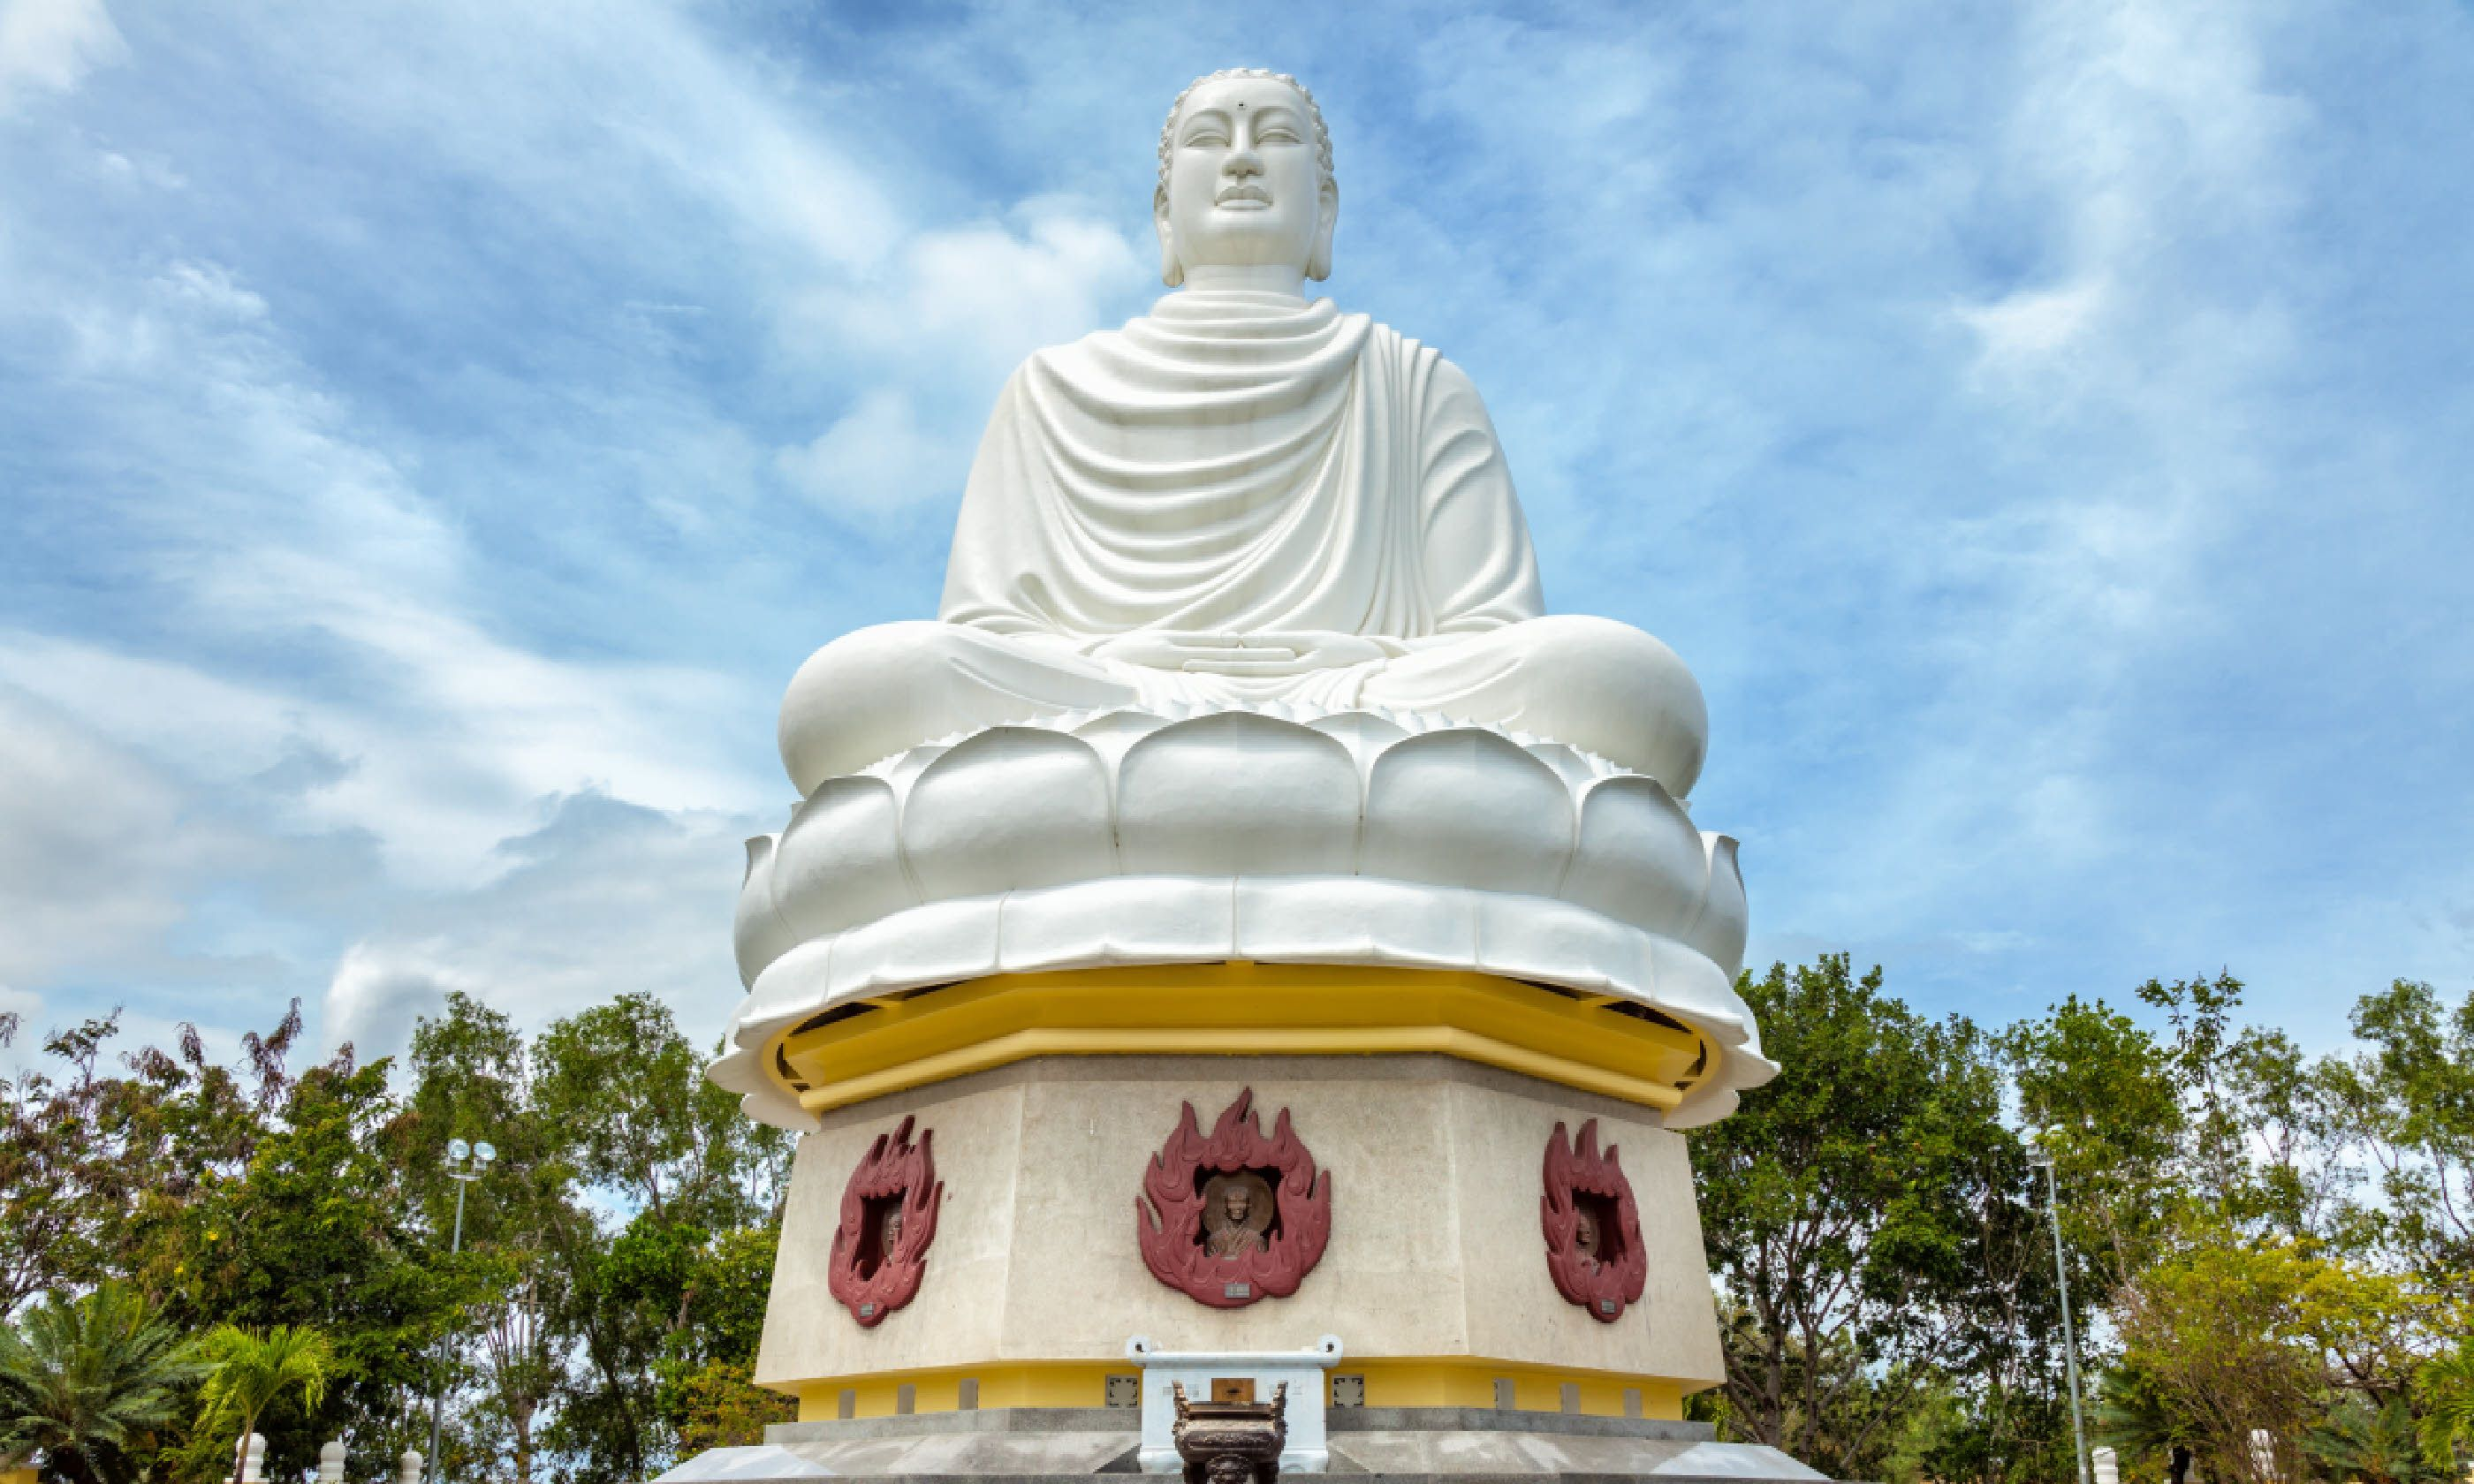 Buddha statue at the Long Son pagoda in Nha Trang (Shutterstock)